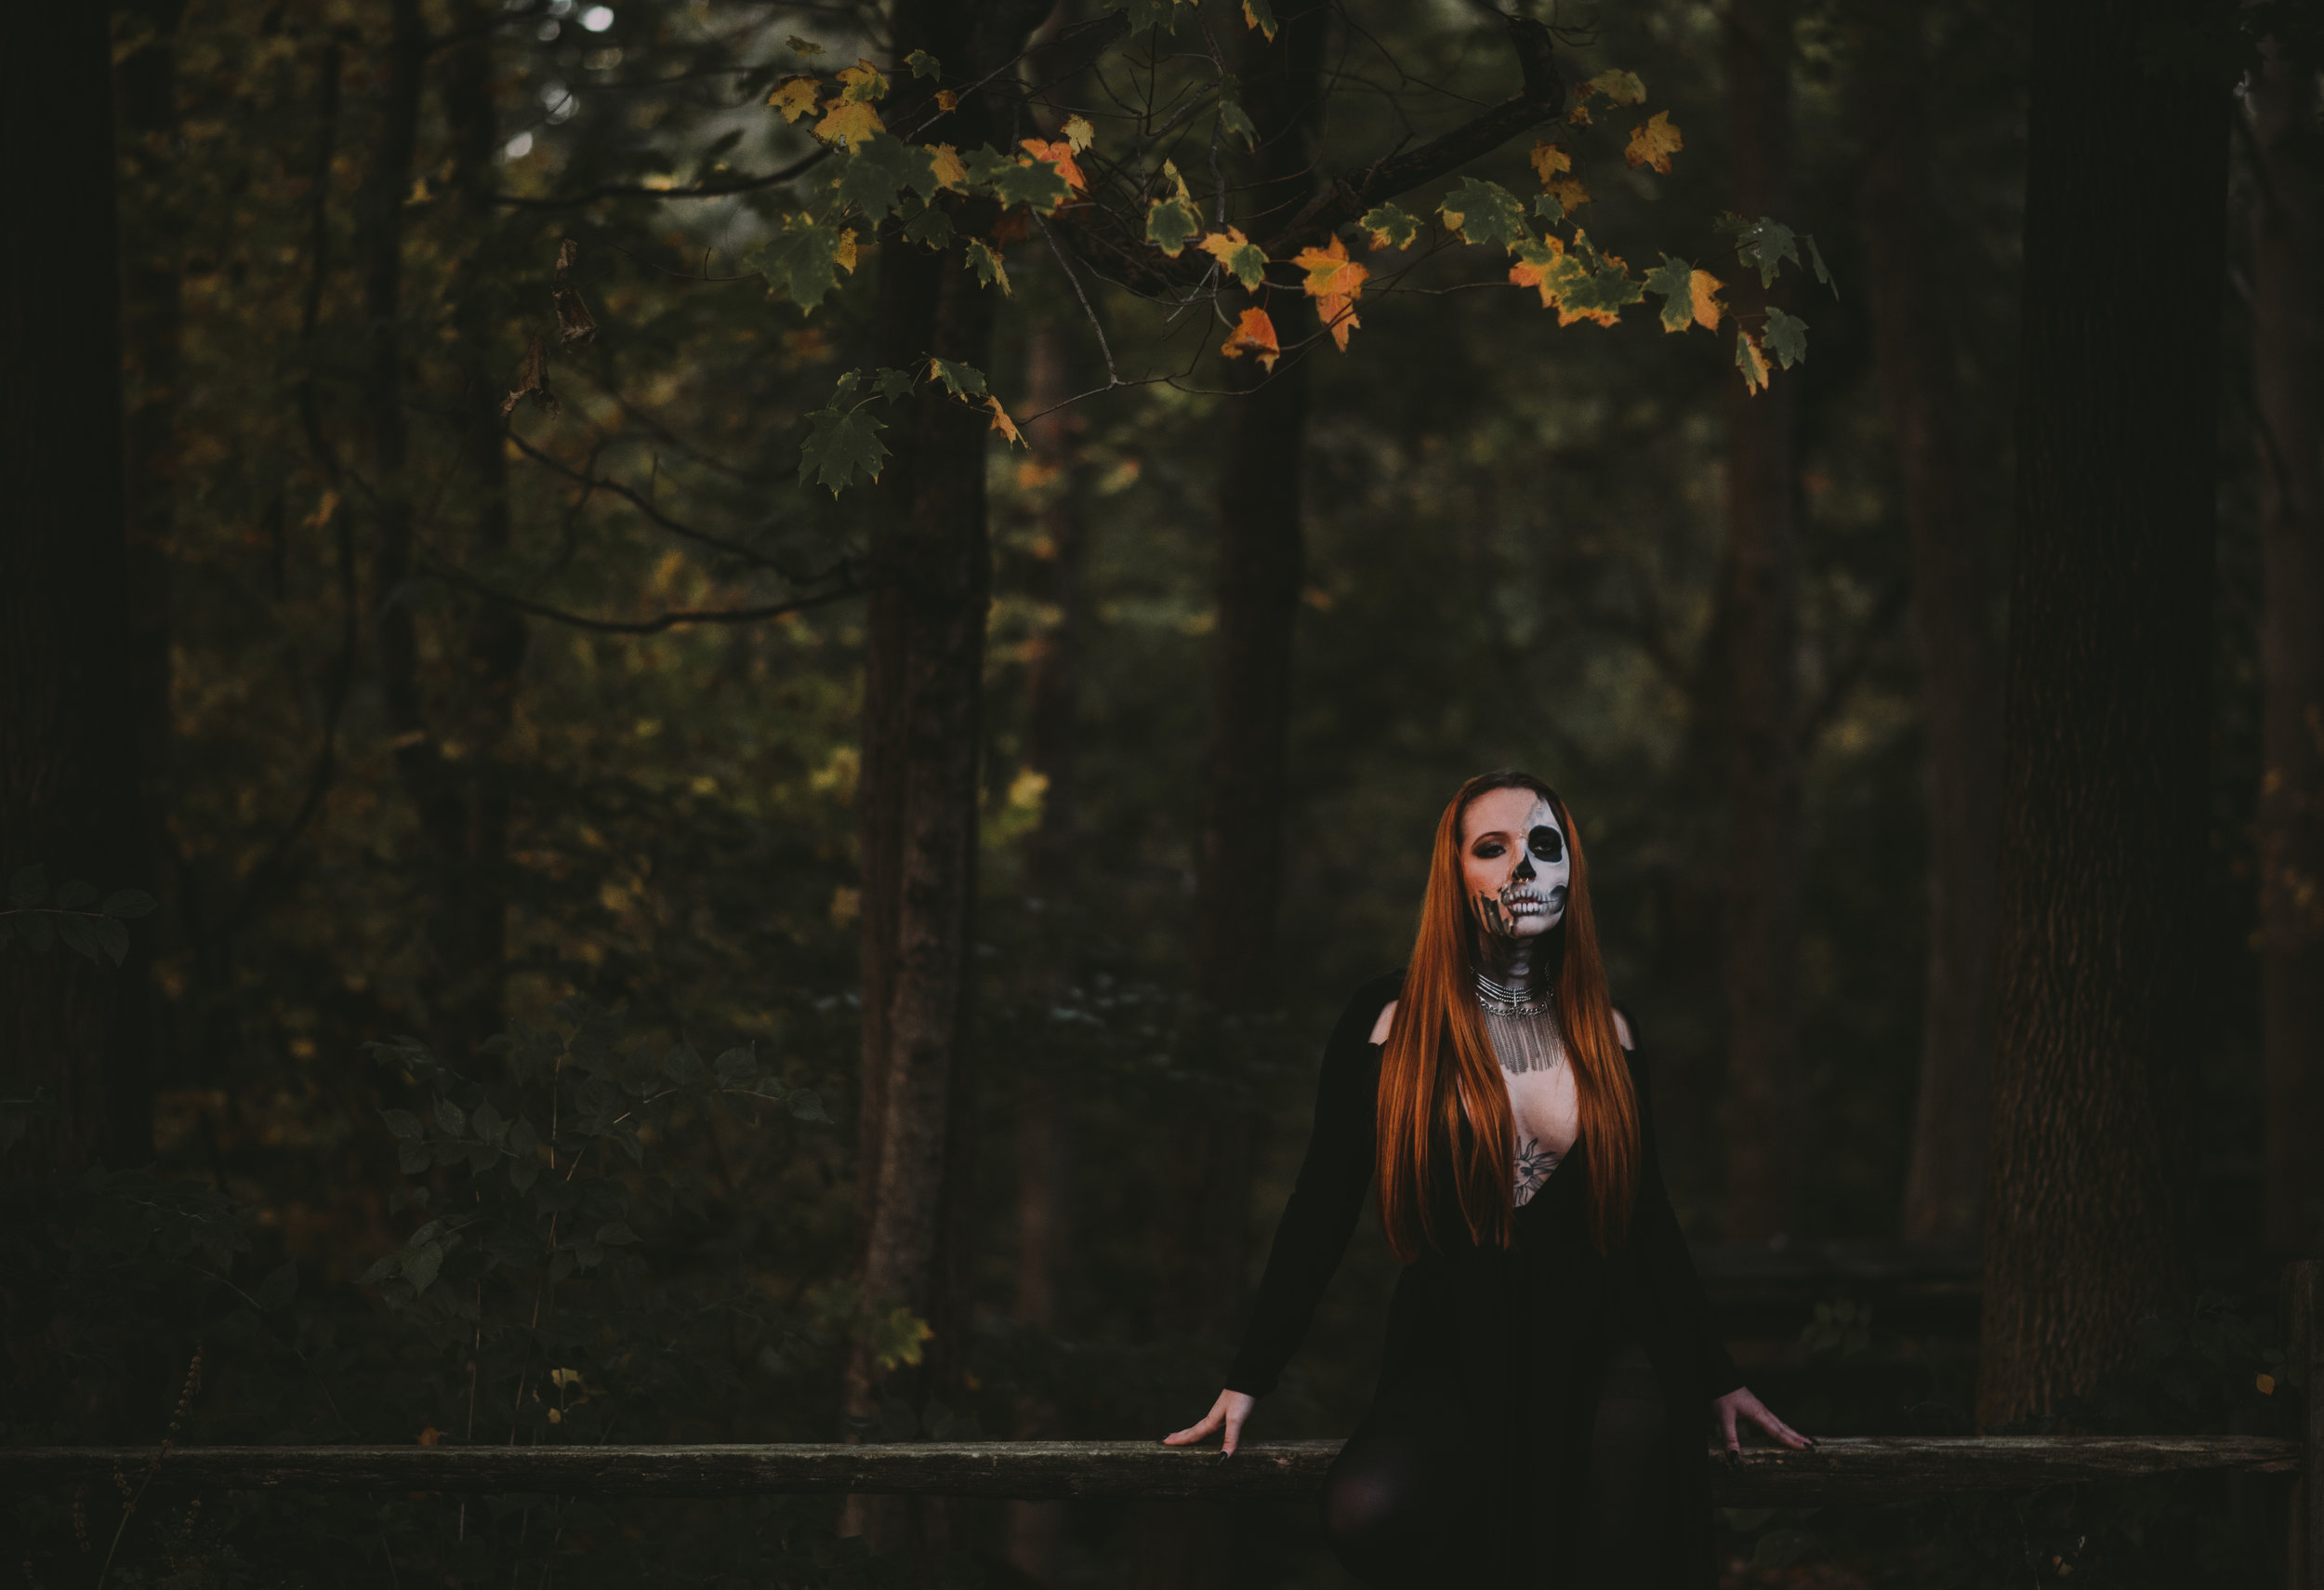 HalloweenSession_Fridaythe13th_October2017_IndianaPortraitPhotographer_SamanthaRosePhotography_--21.jpg